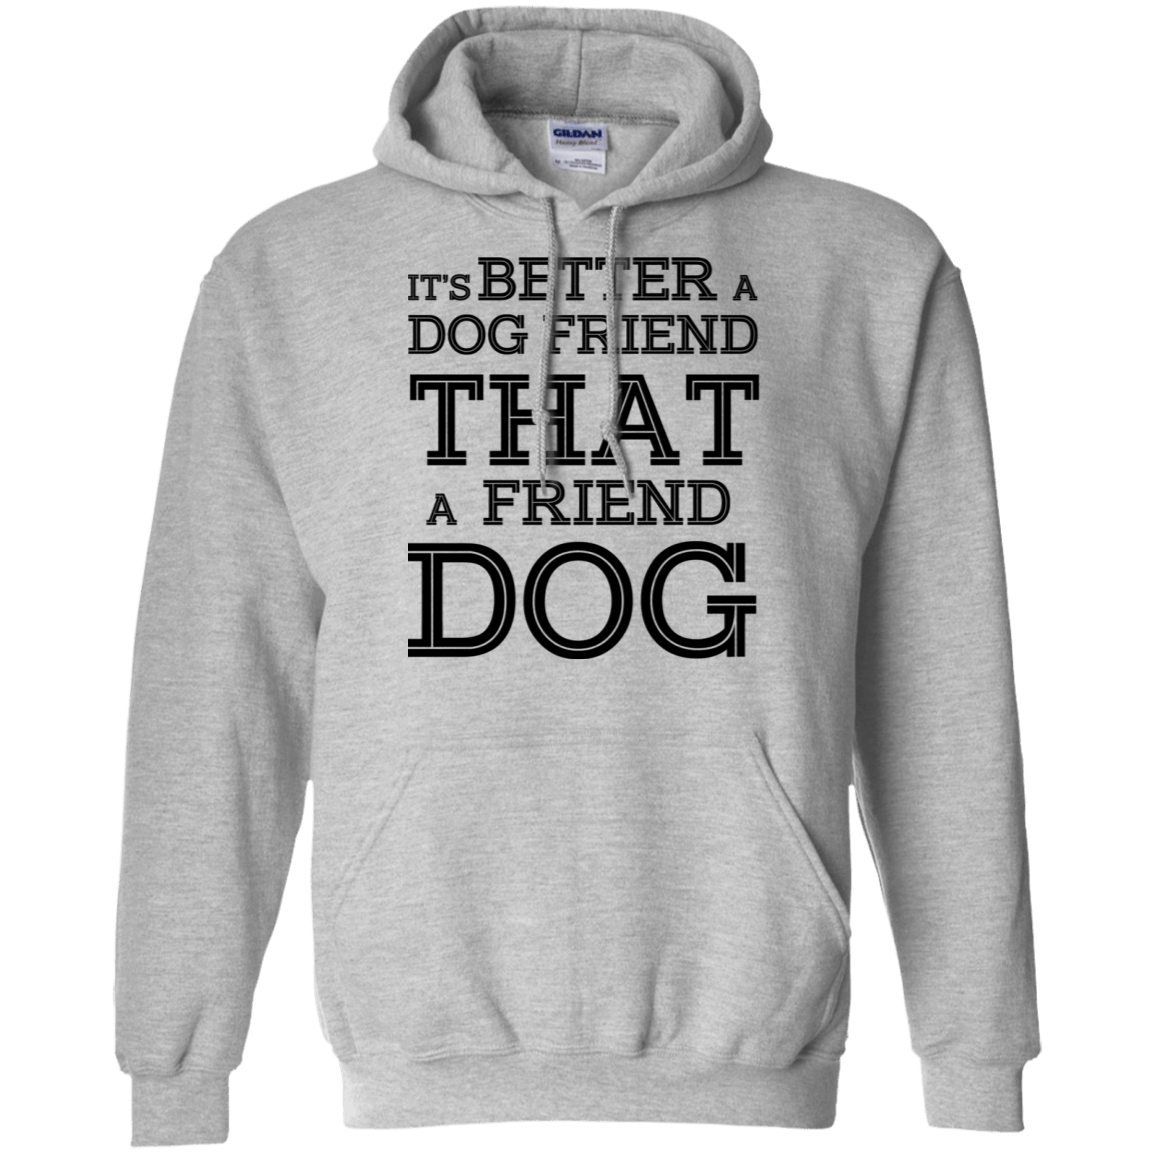 It's Better A Dog Friend That A Friend Dog 541-4741-73564857-23111 - Tee Ript